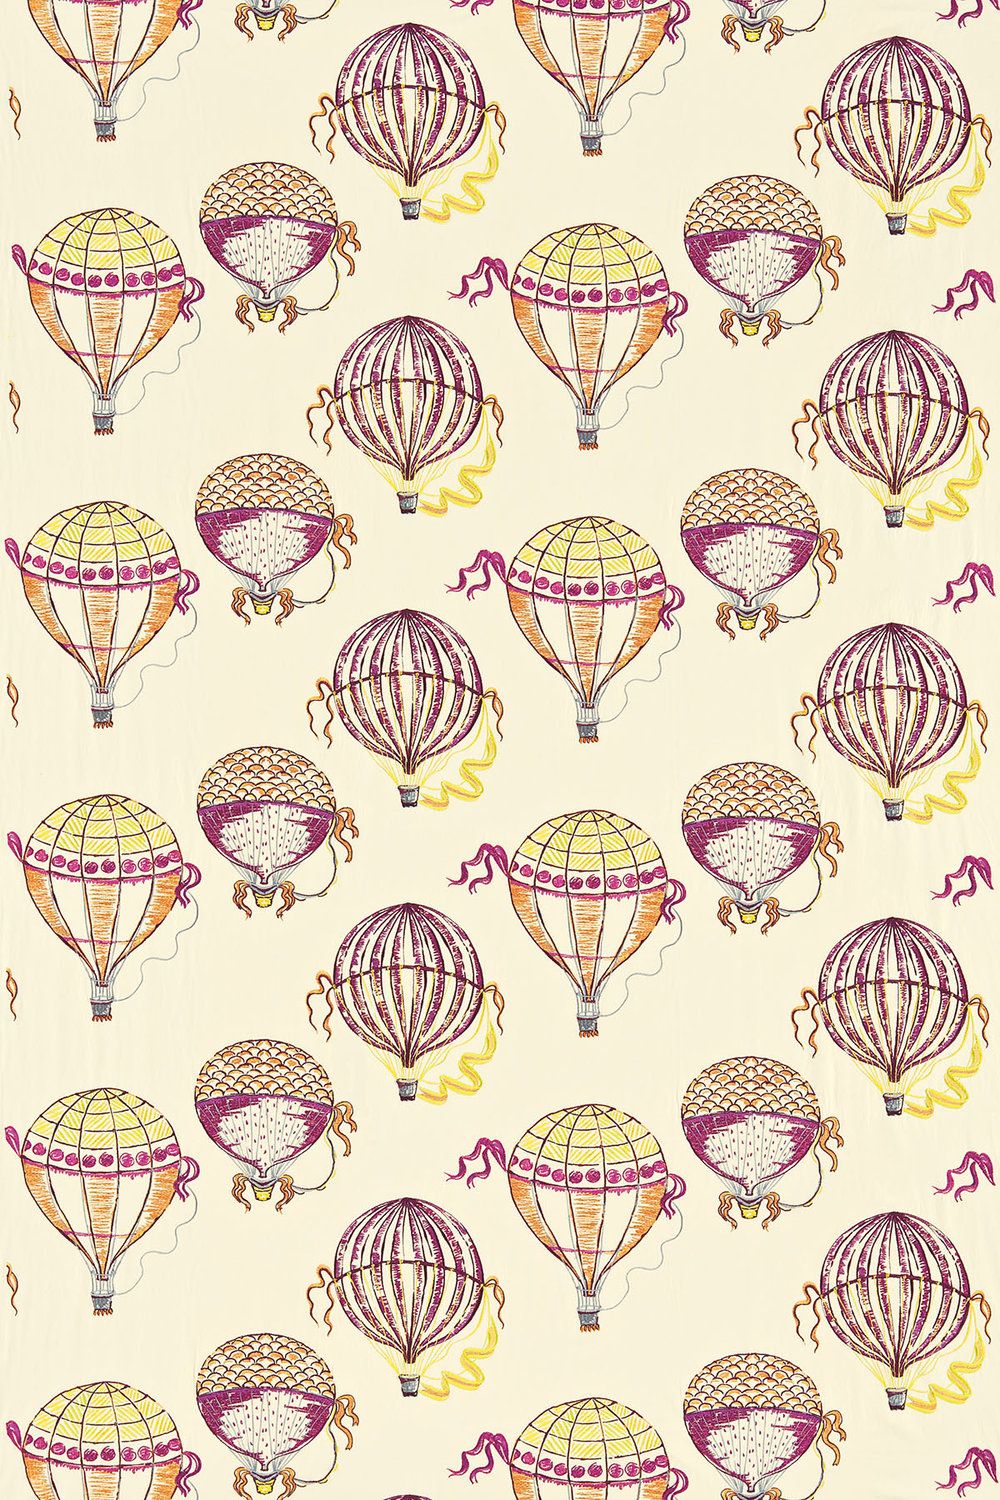 Sanderson Beautiful Balloons Pink / Orange / Yellow Fabric - Product code: 232300